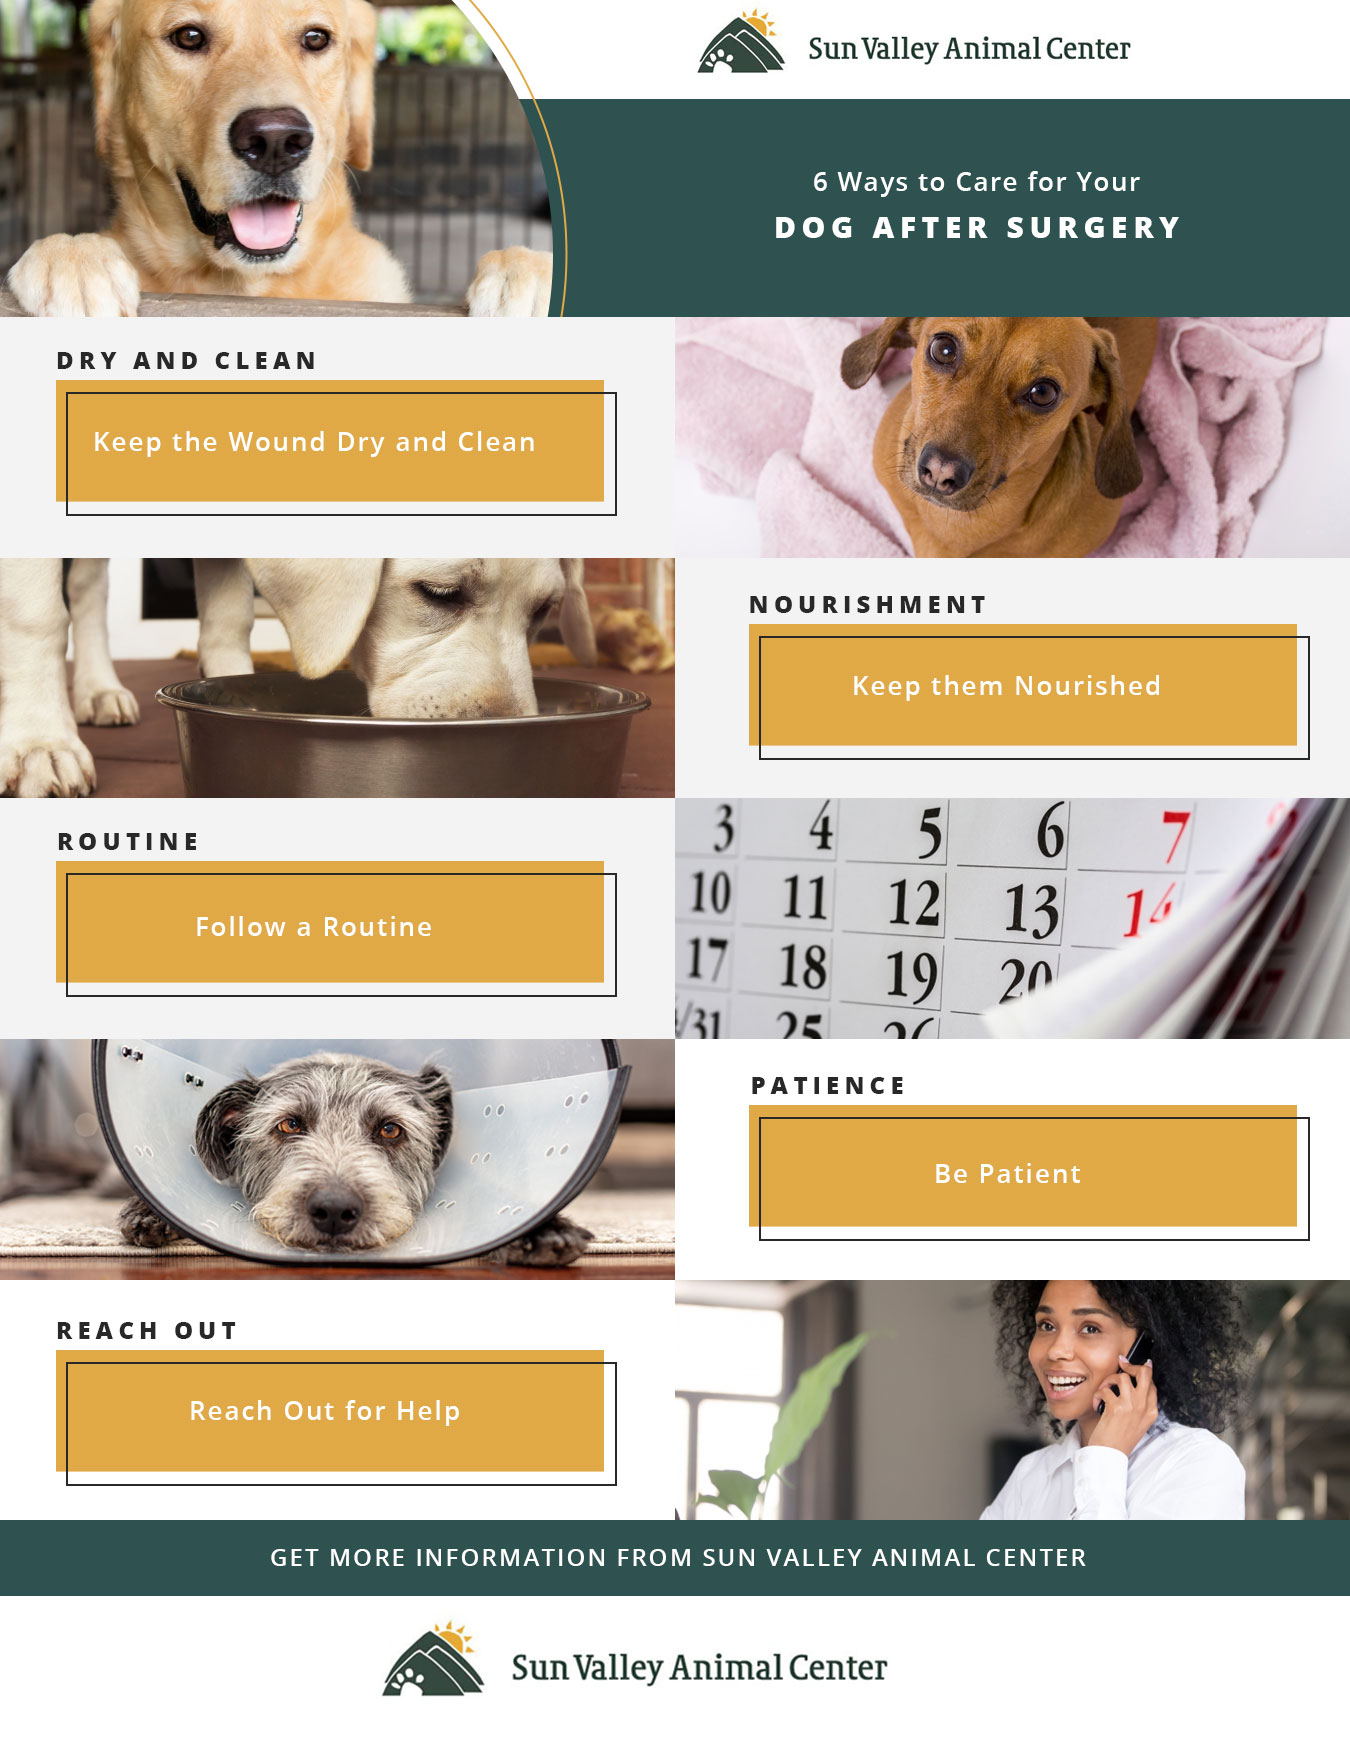 6-Ways-to-Care-for-Your-Dog-After-Surgery1